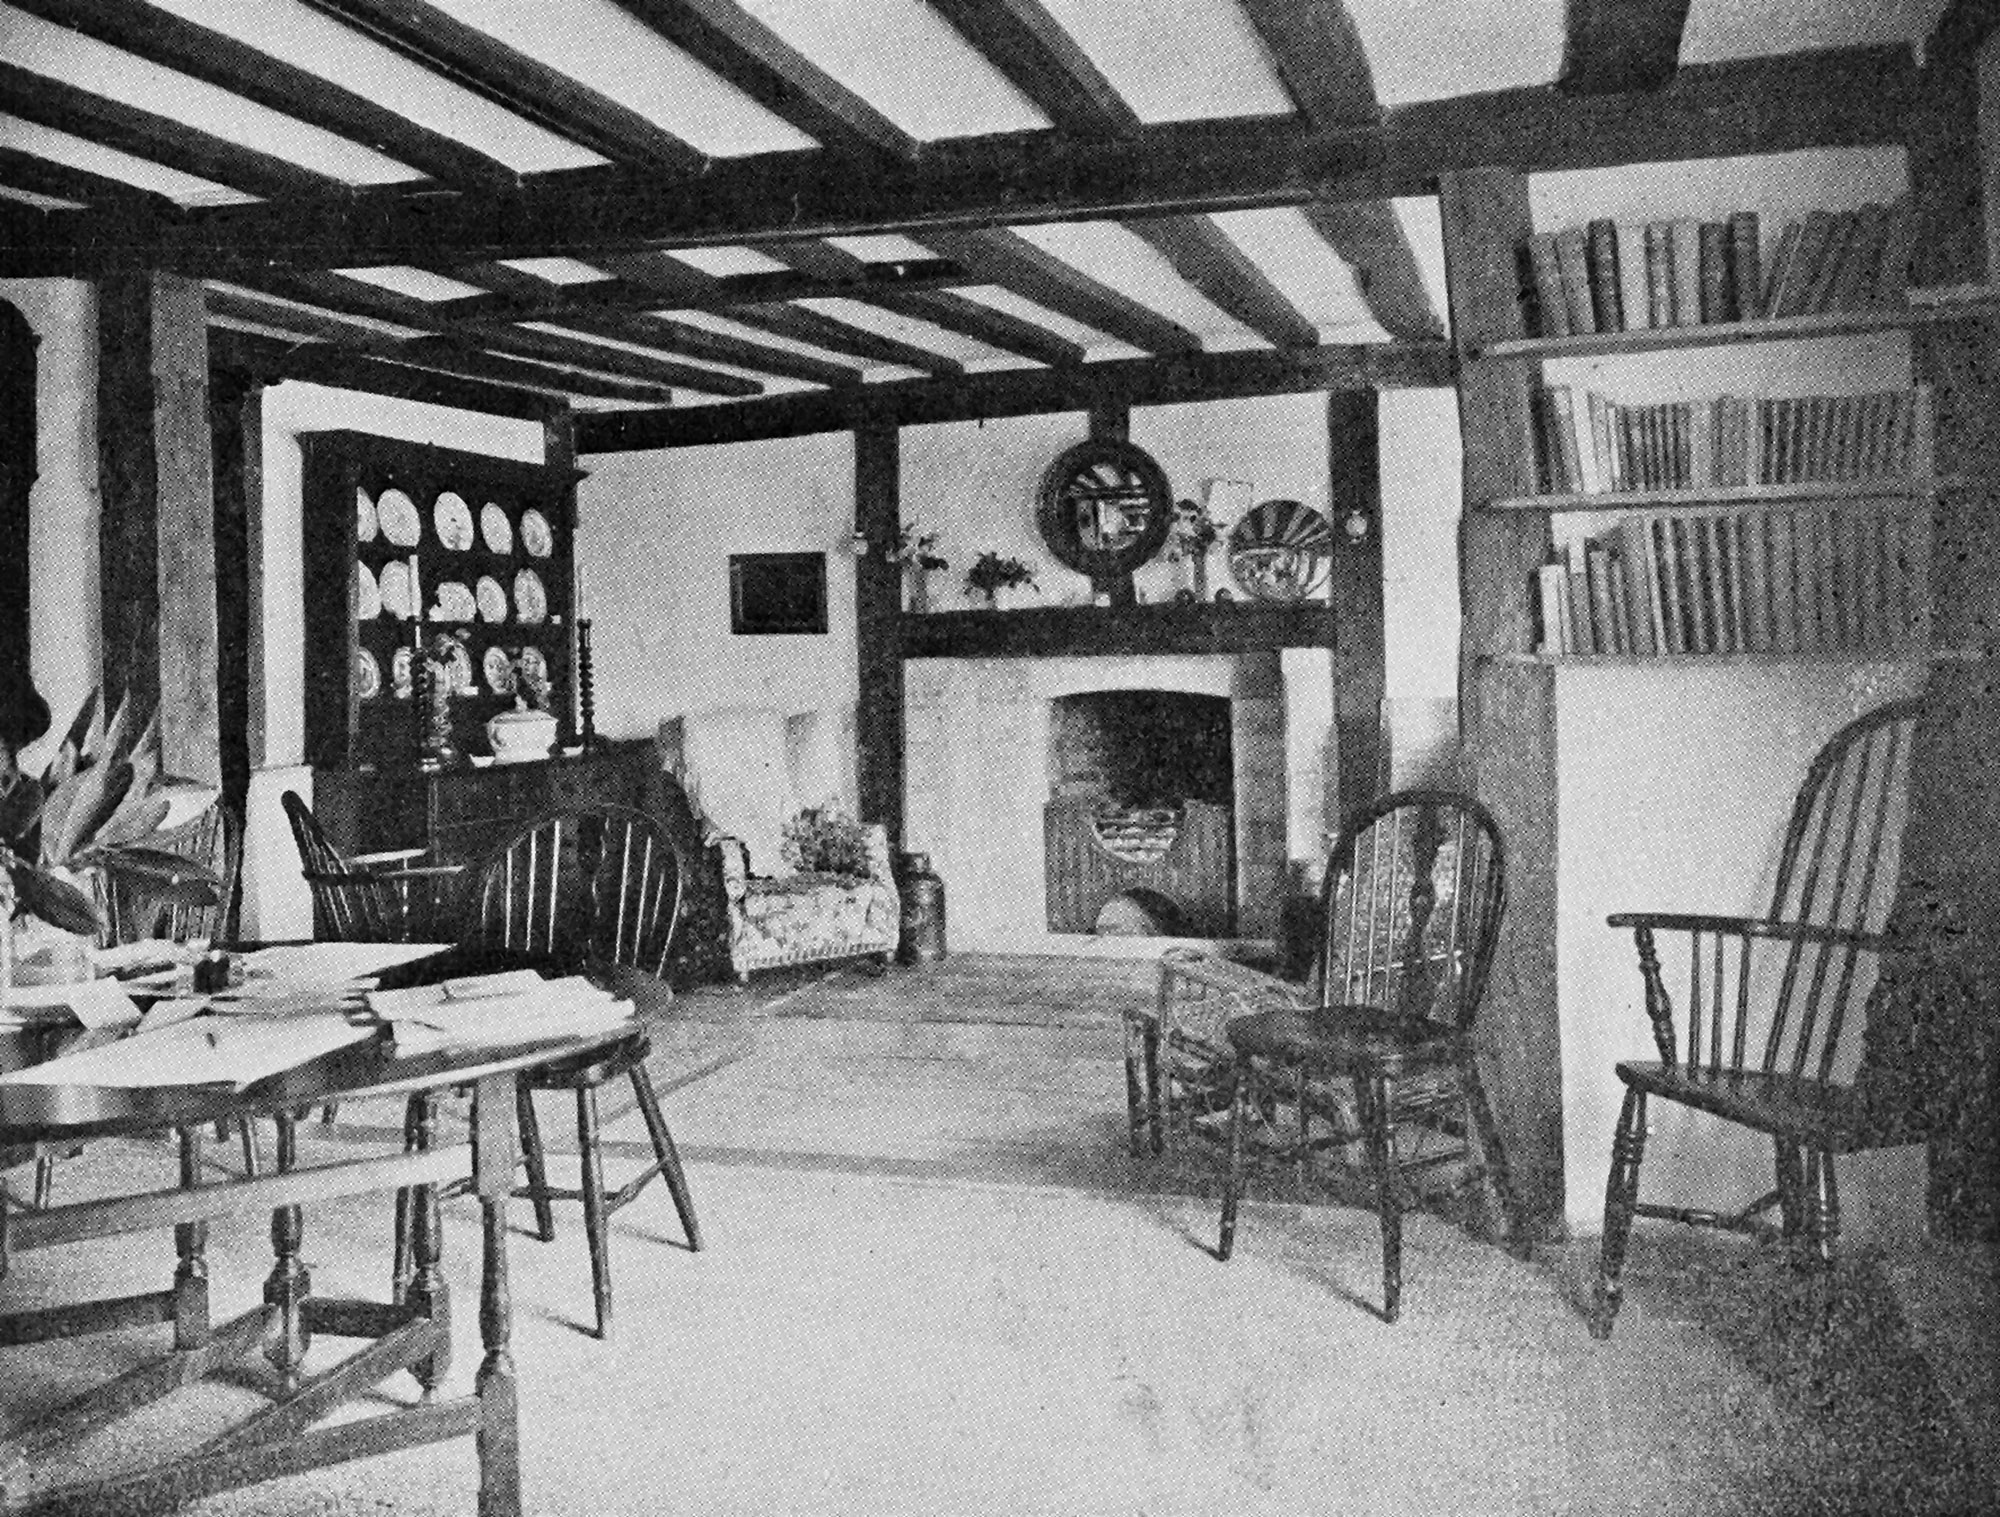 A living room showing timber ceiling beams